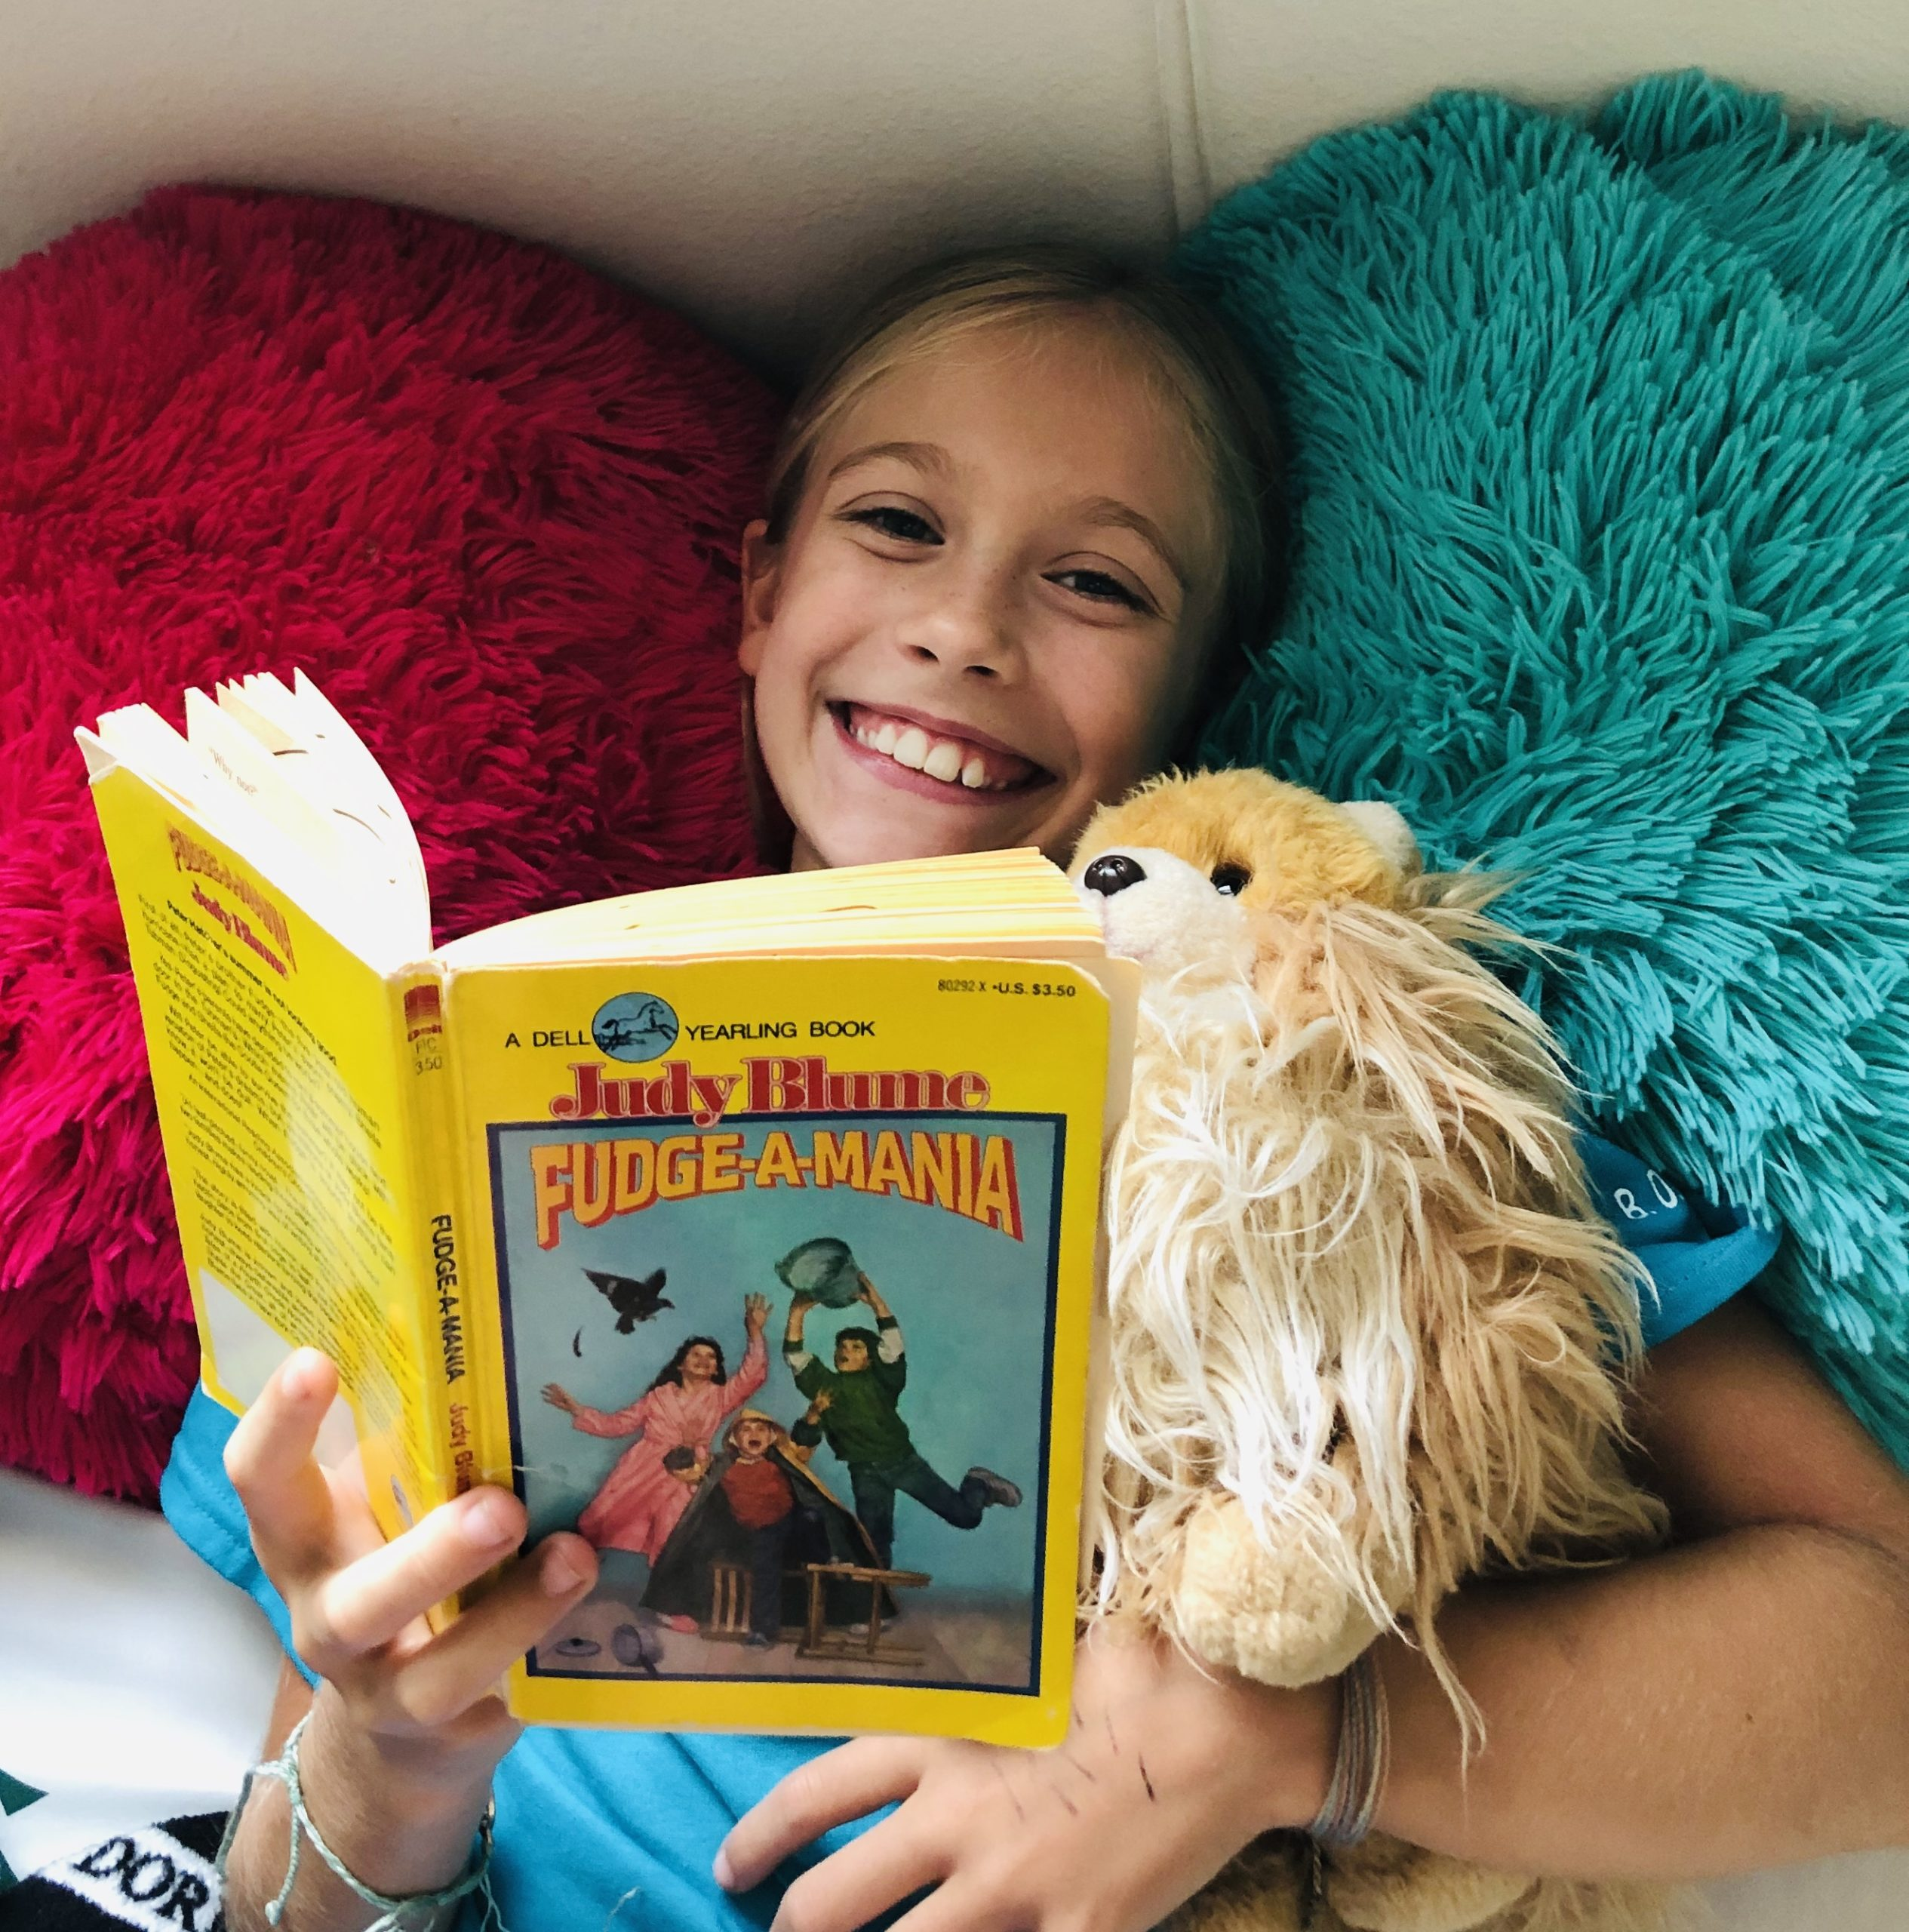 For the book review, a blond haired girl, Brecken, reading Fudge-A-Mania by Judy Blume. She's laying on 2 fuzzy pillows, hot pink and blue. She's smiling.